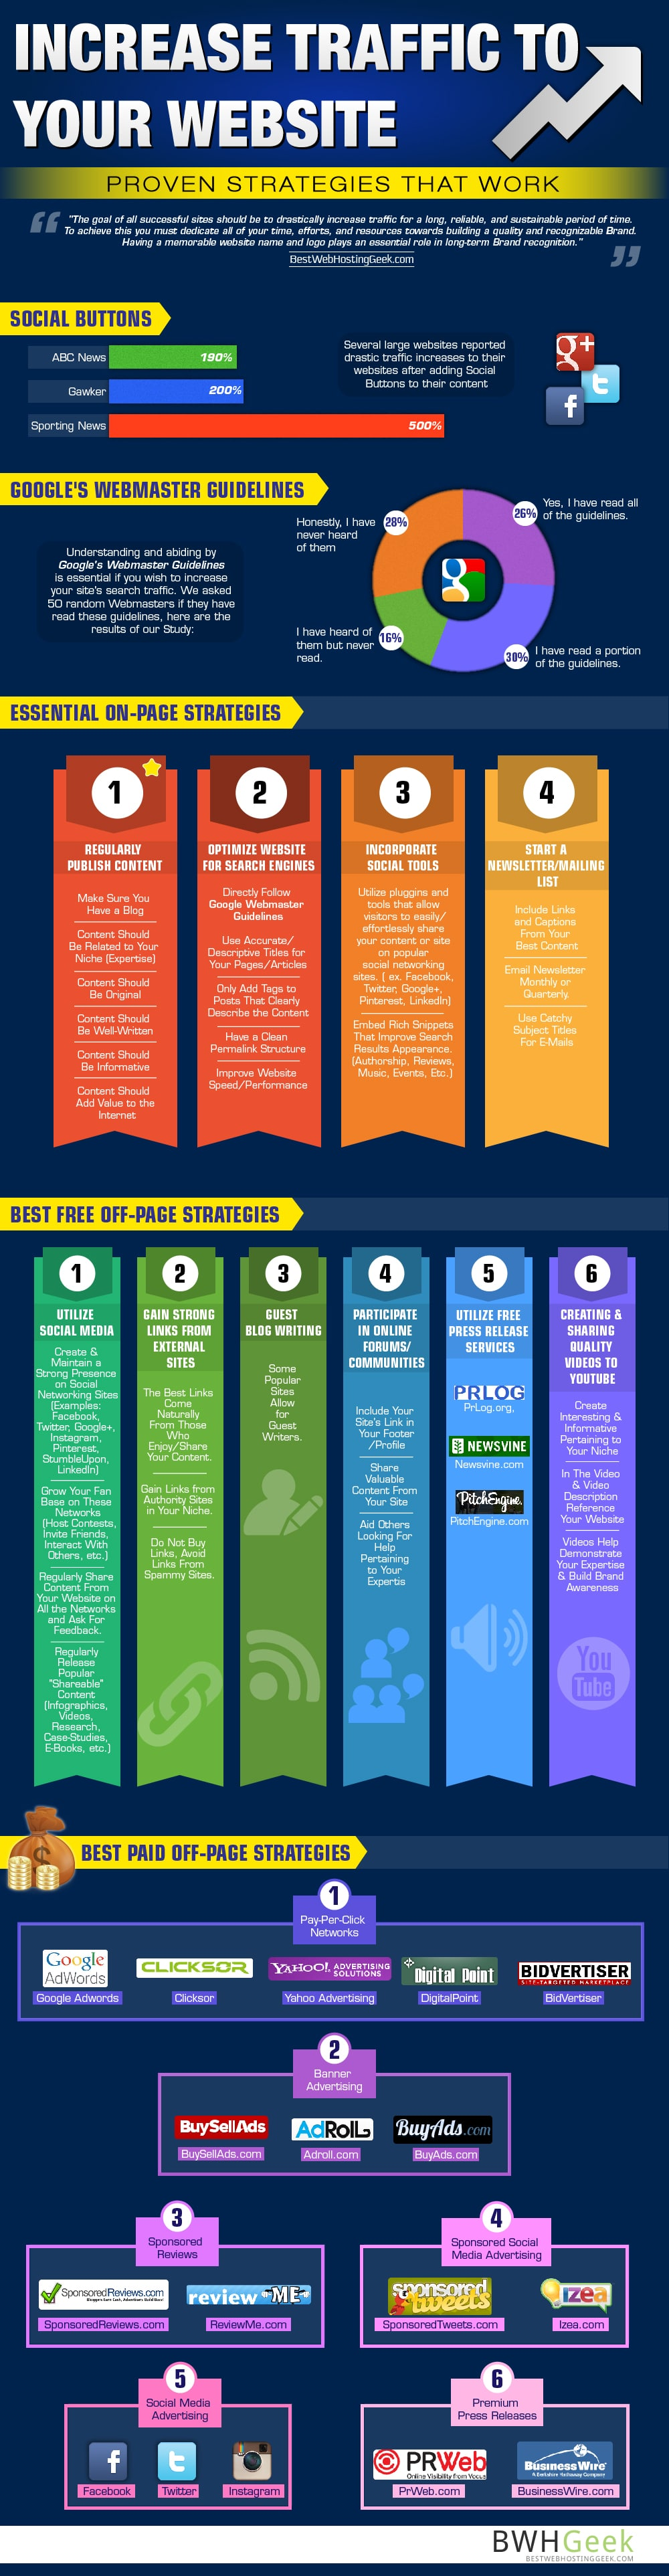 top-strategies-increase-traffic-infographic